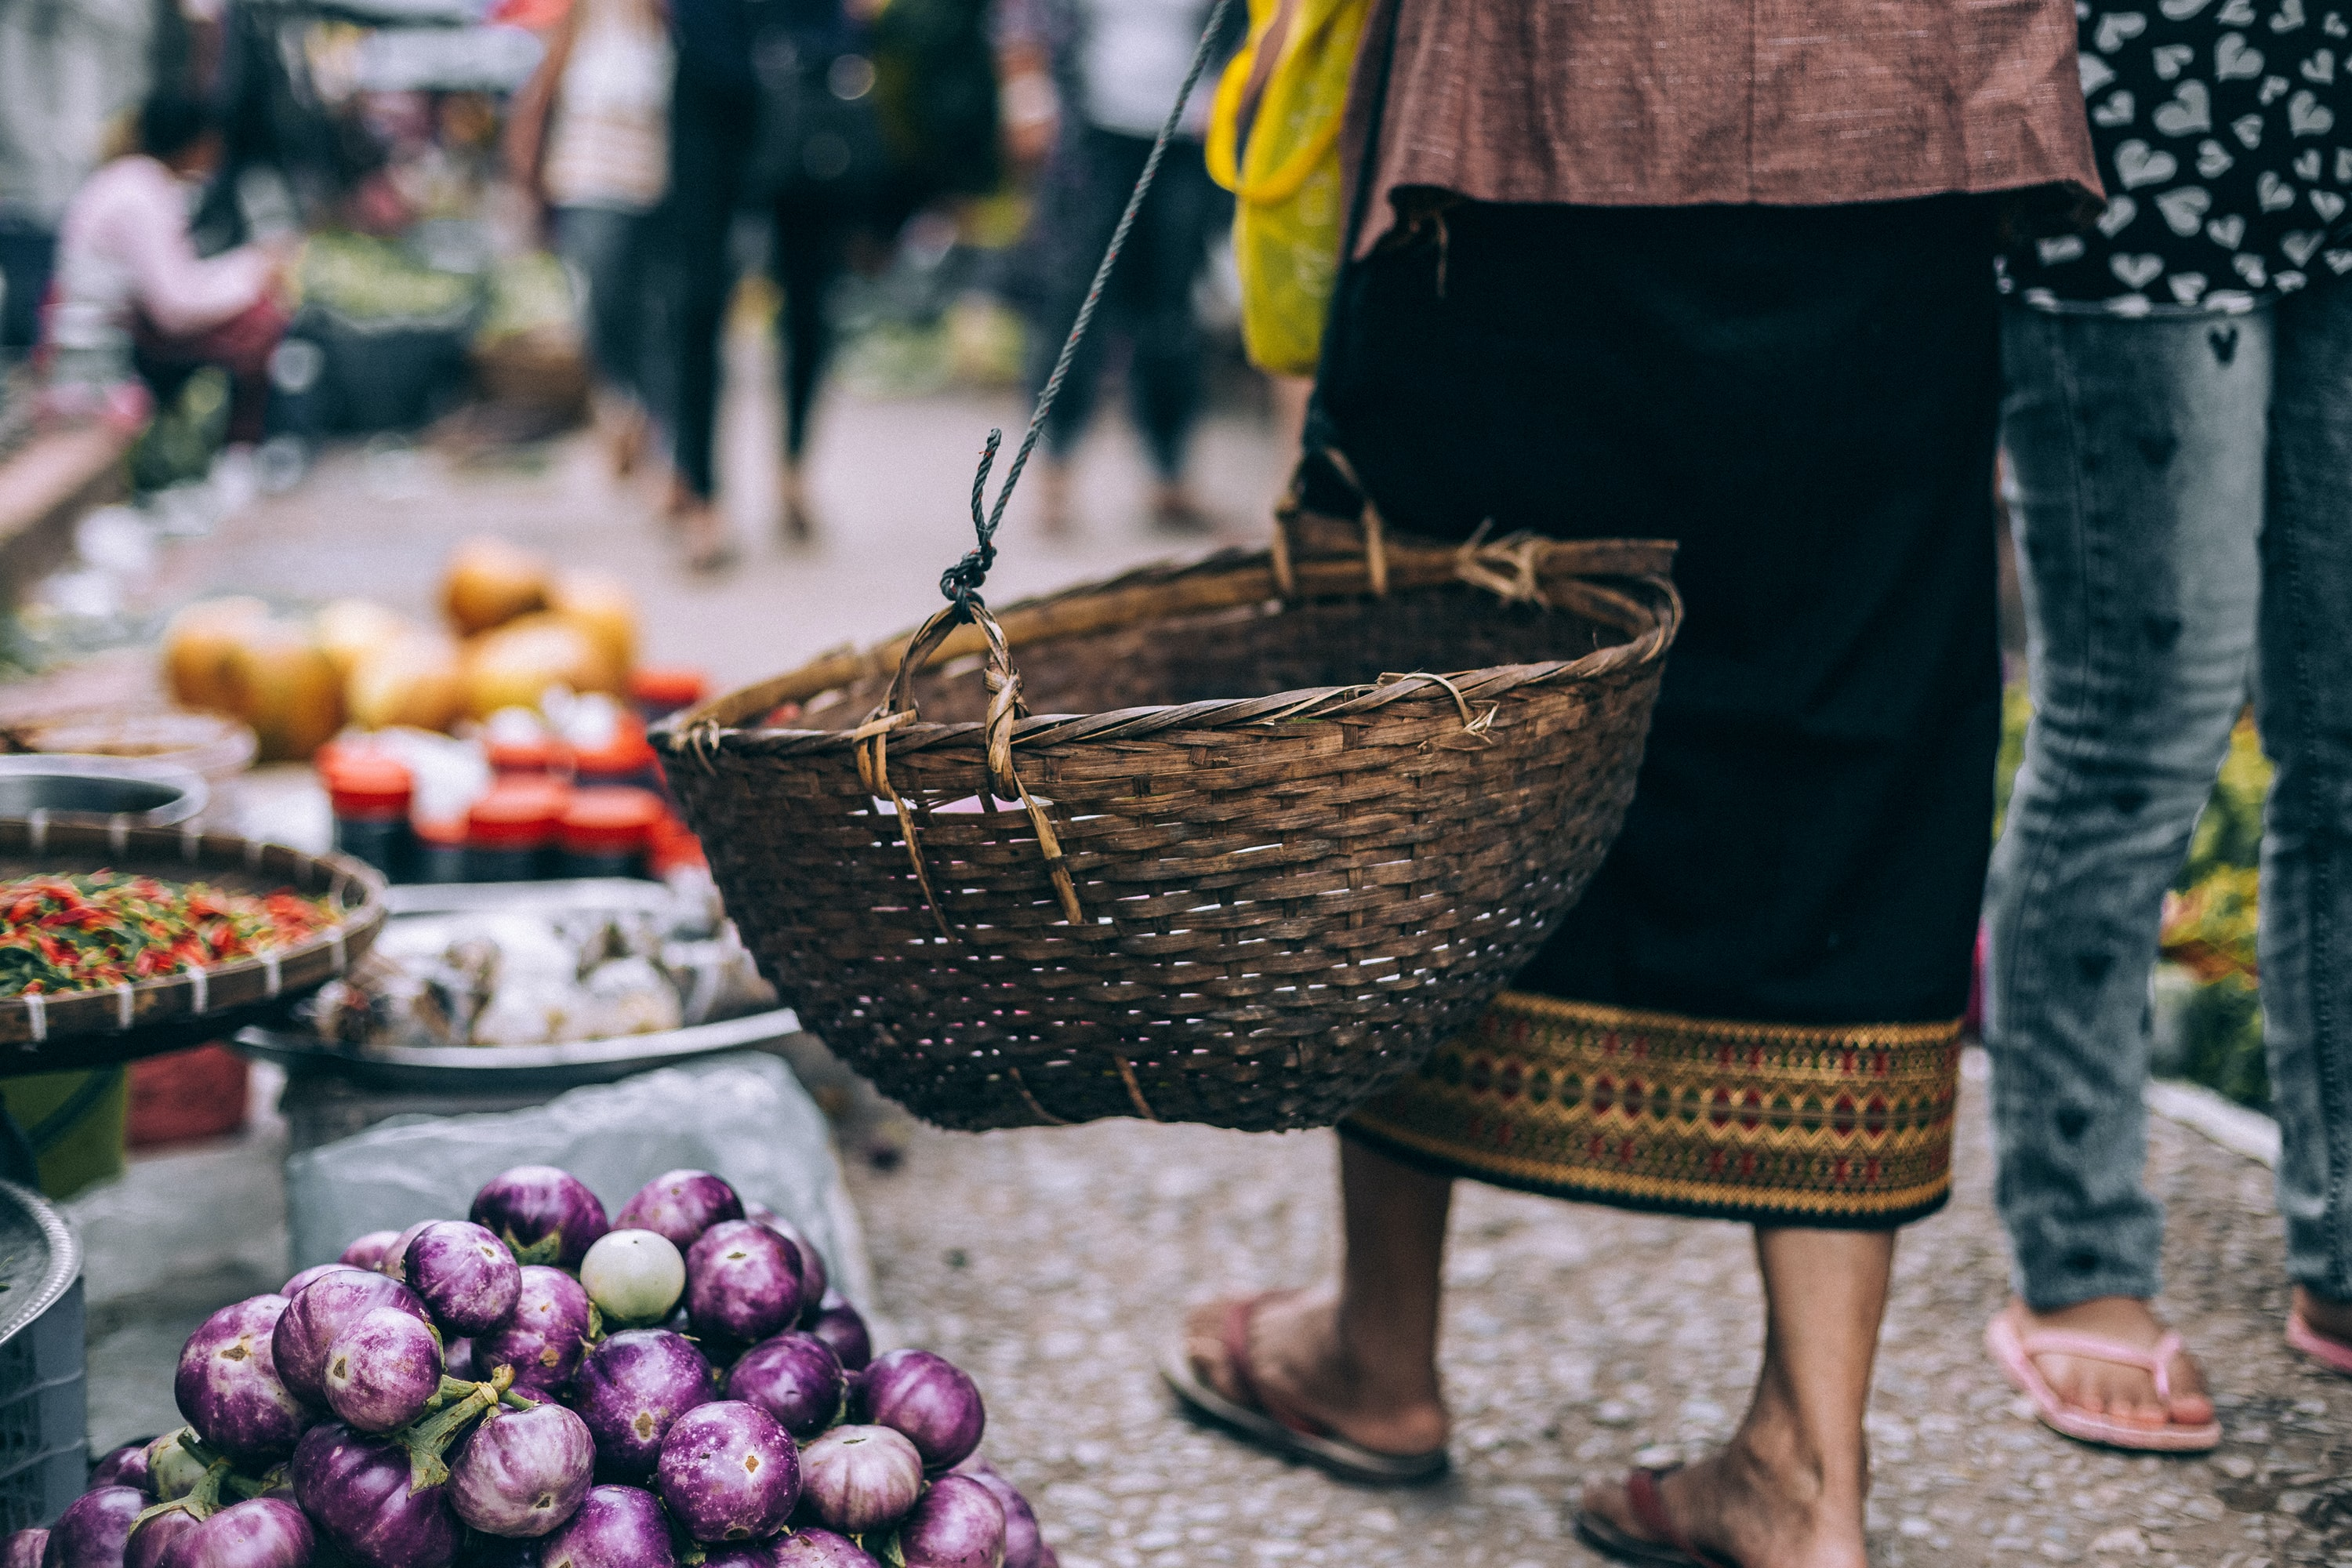 People walk through an Asian produce market with baskets